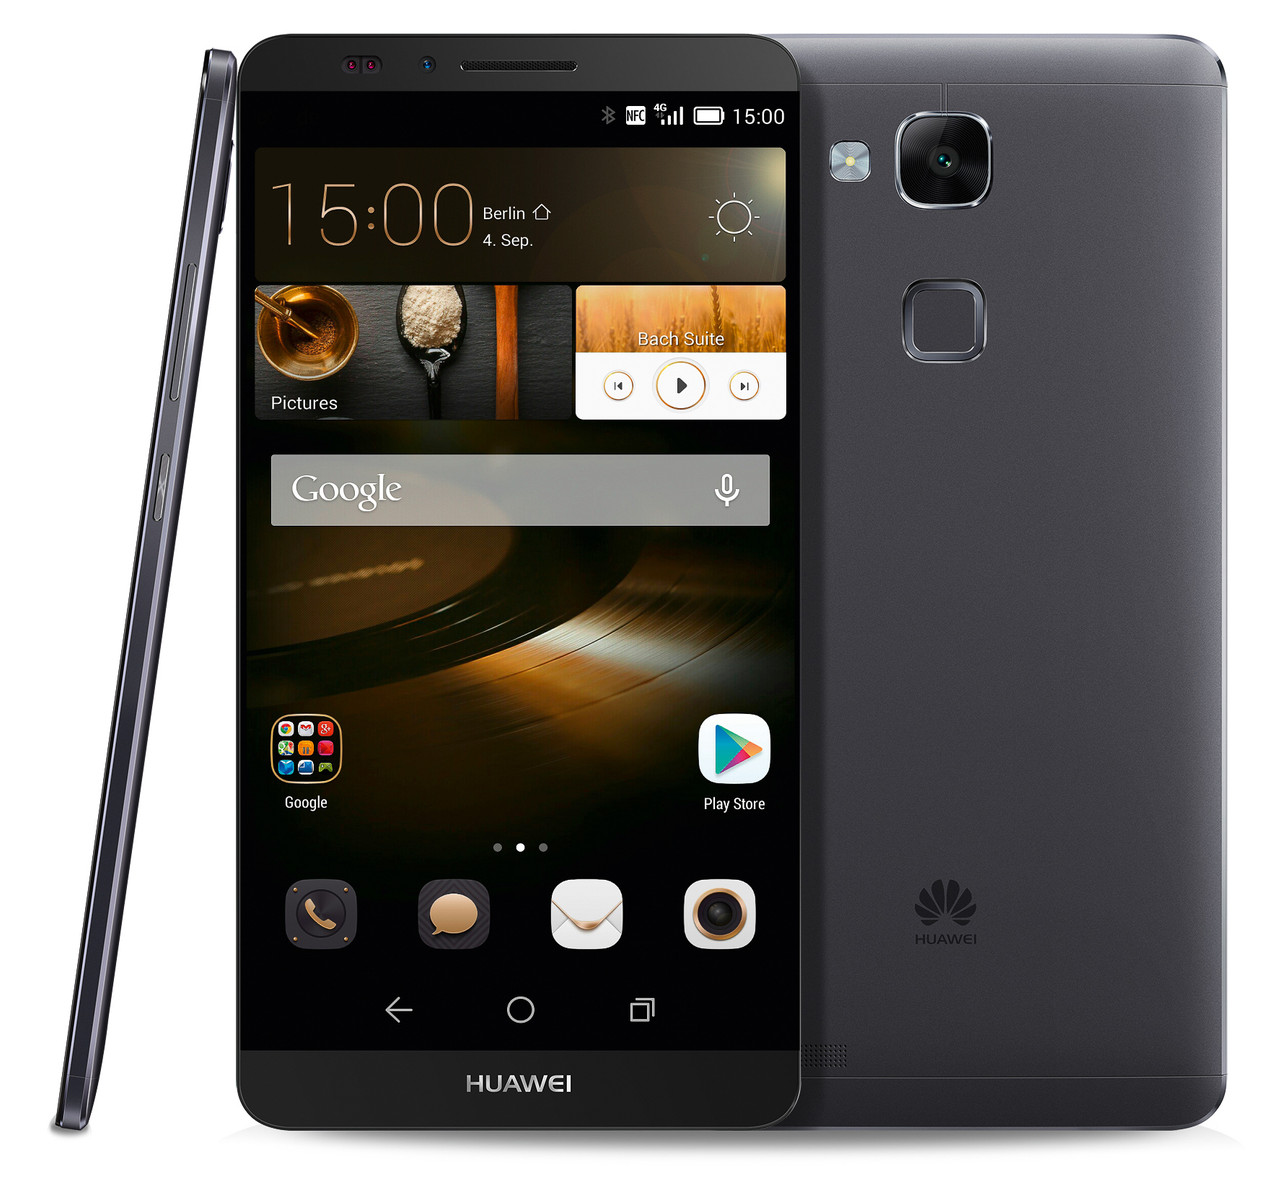 Test Huawei Ascend Mate 7 Phablet